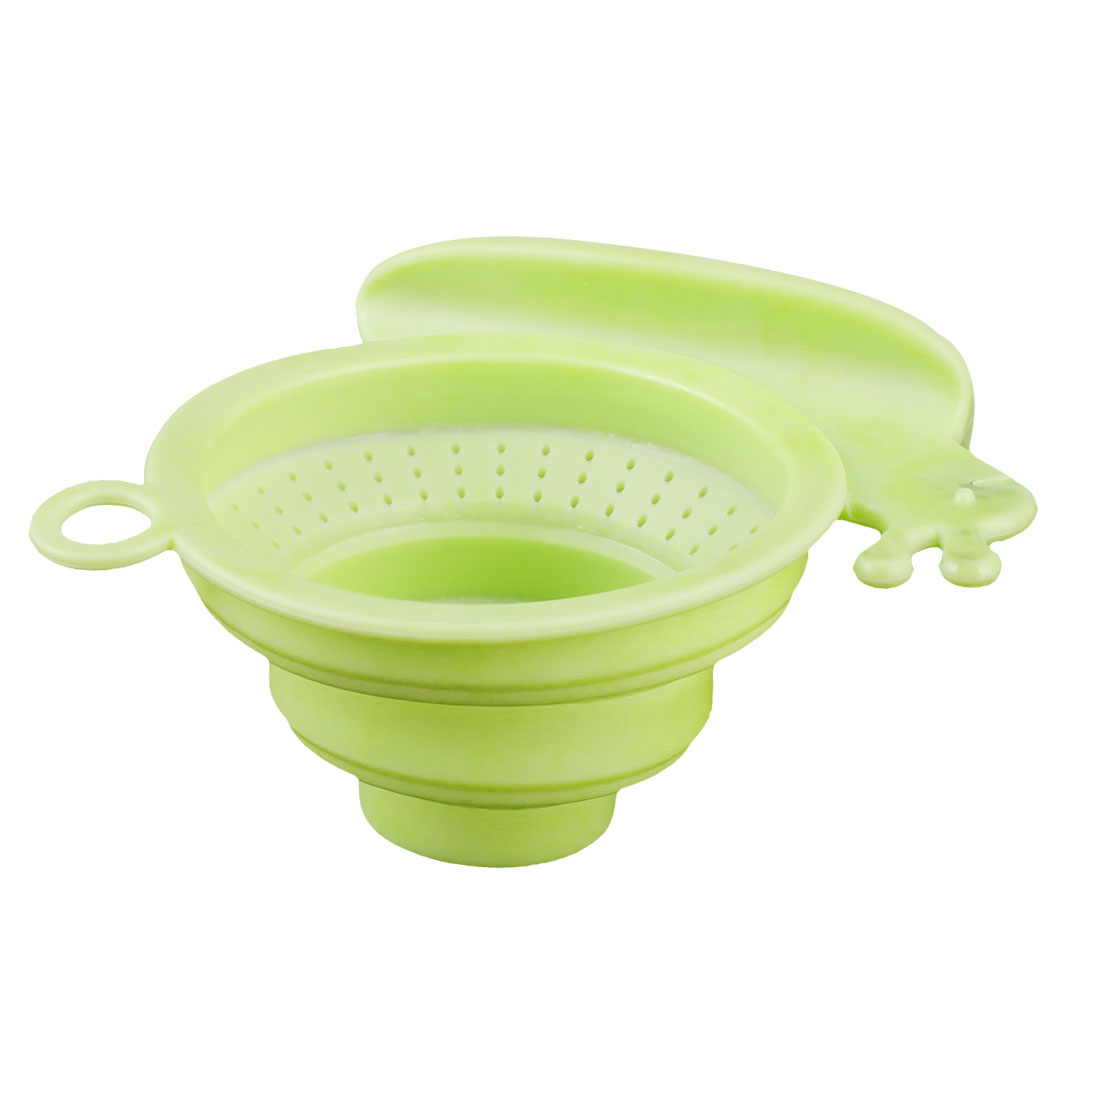 Household Silicone Snail Design Basin Sink Floor Drainer Strainer Stopper Light Green